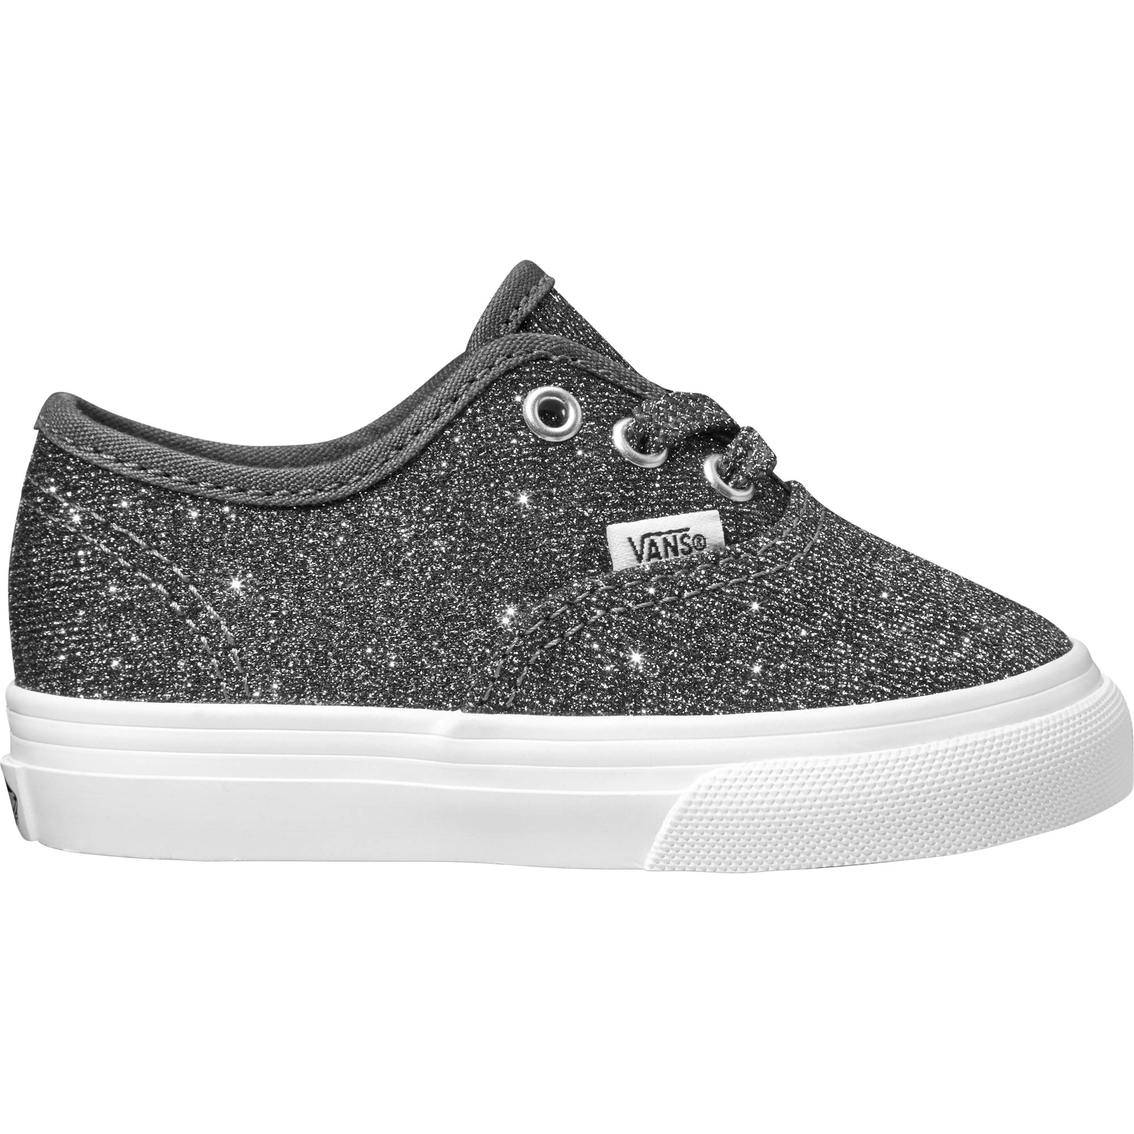 afd4cd52aaa9 Vans Girls Lurex Glitter Authentic | Children's Athletic Shoes ...